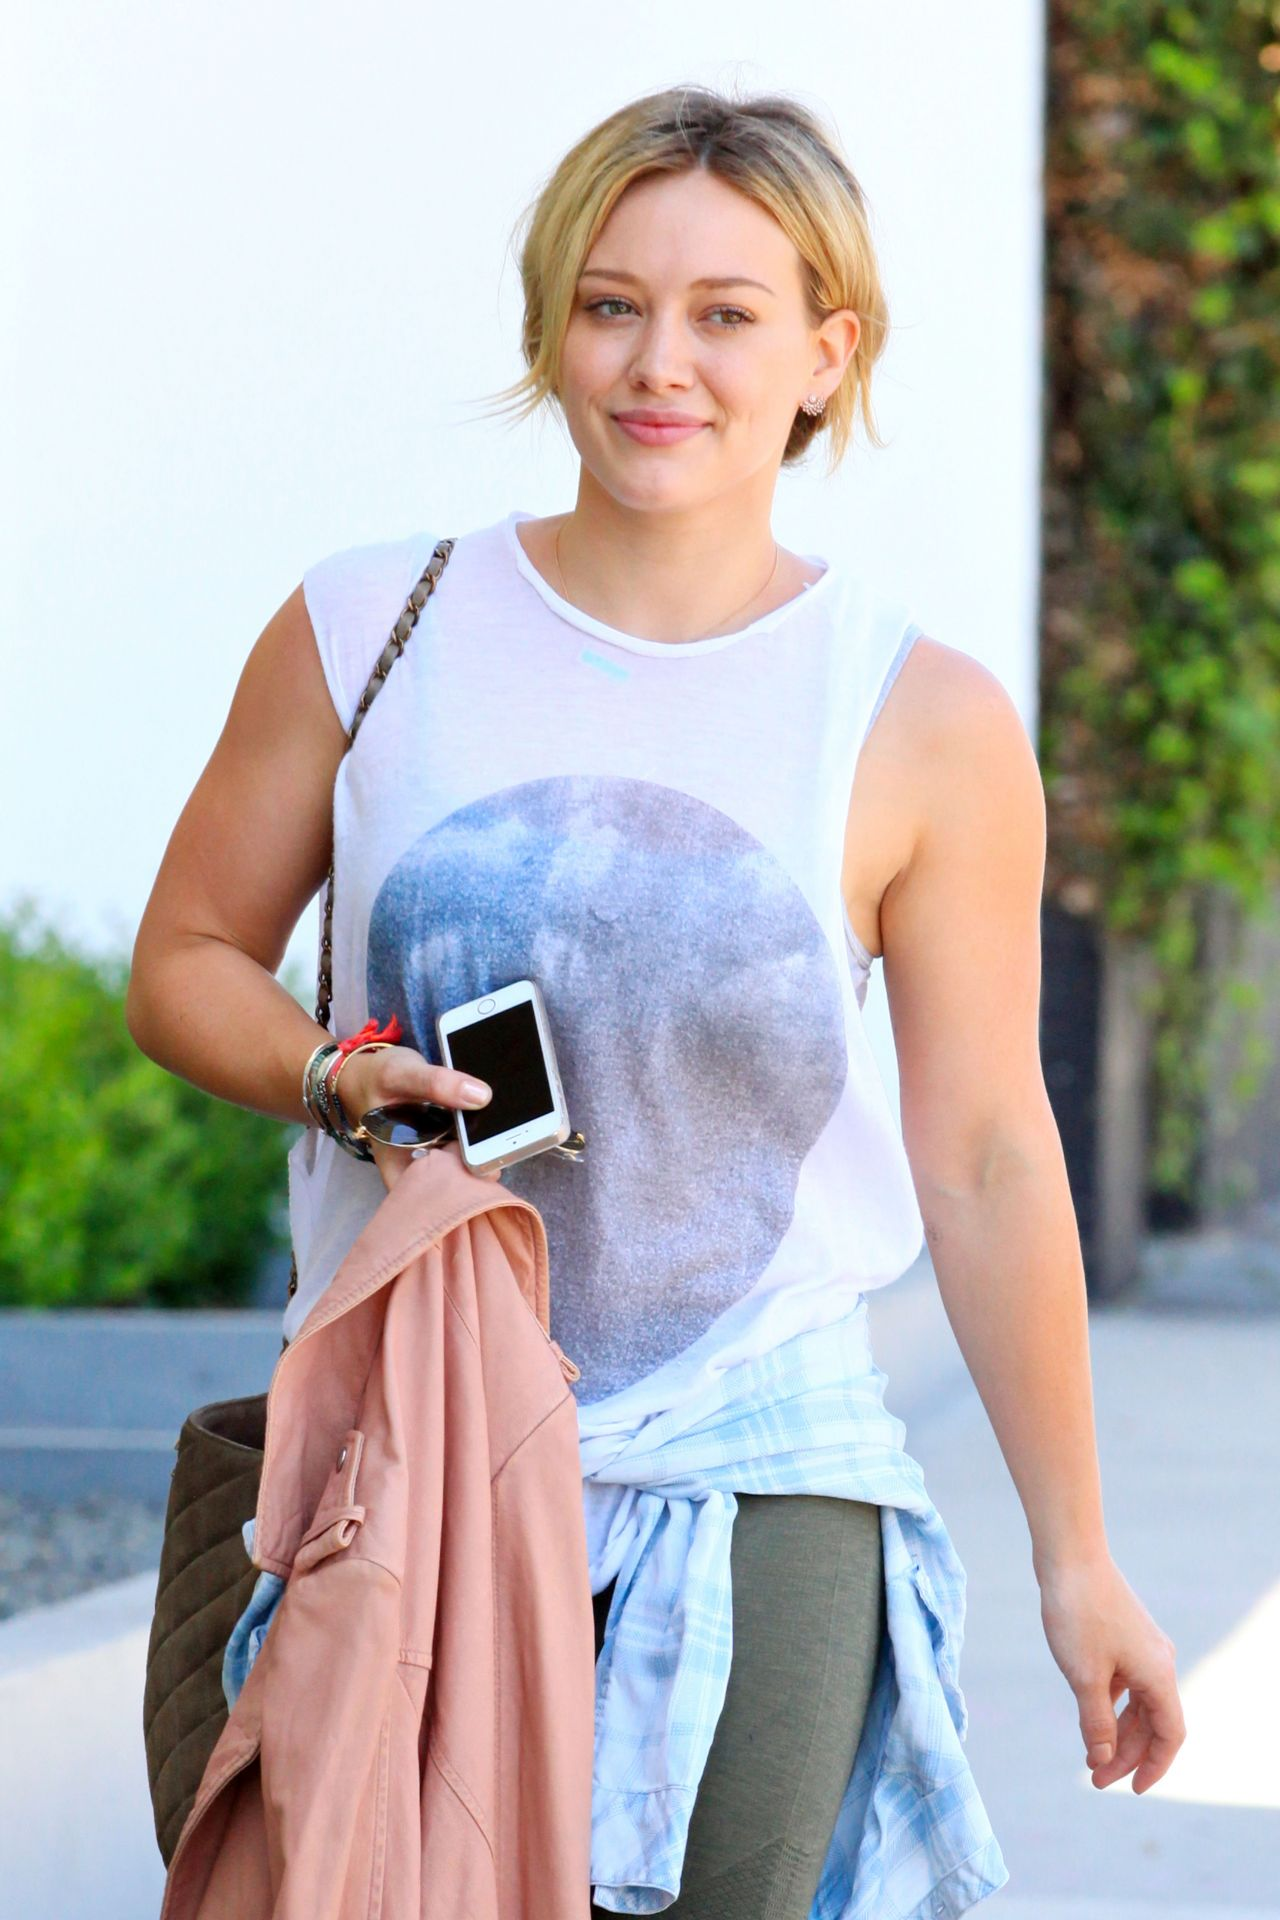 Hilary Duff Leaving the Gym in West Hollywood - July 2014